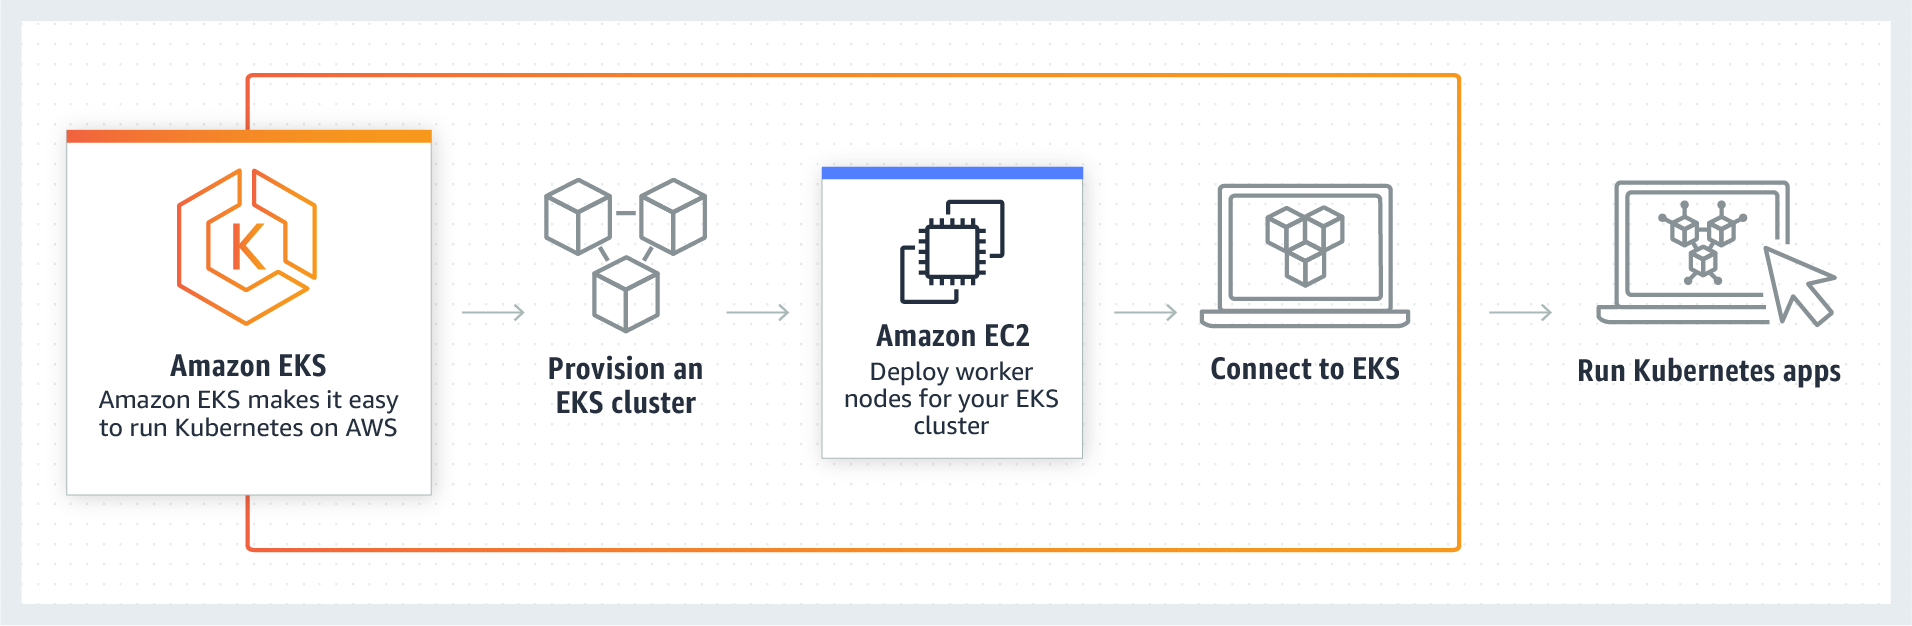 product-page-diagram-AmazonEKS-v2